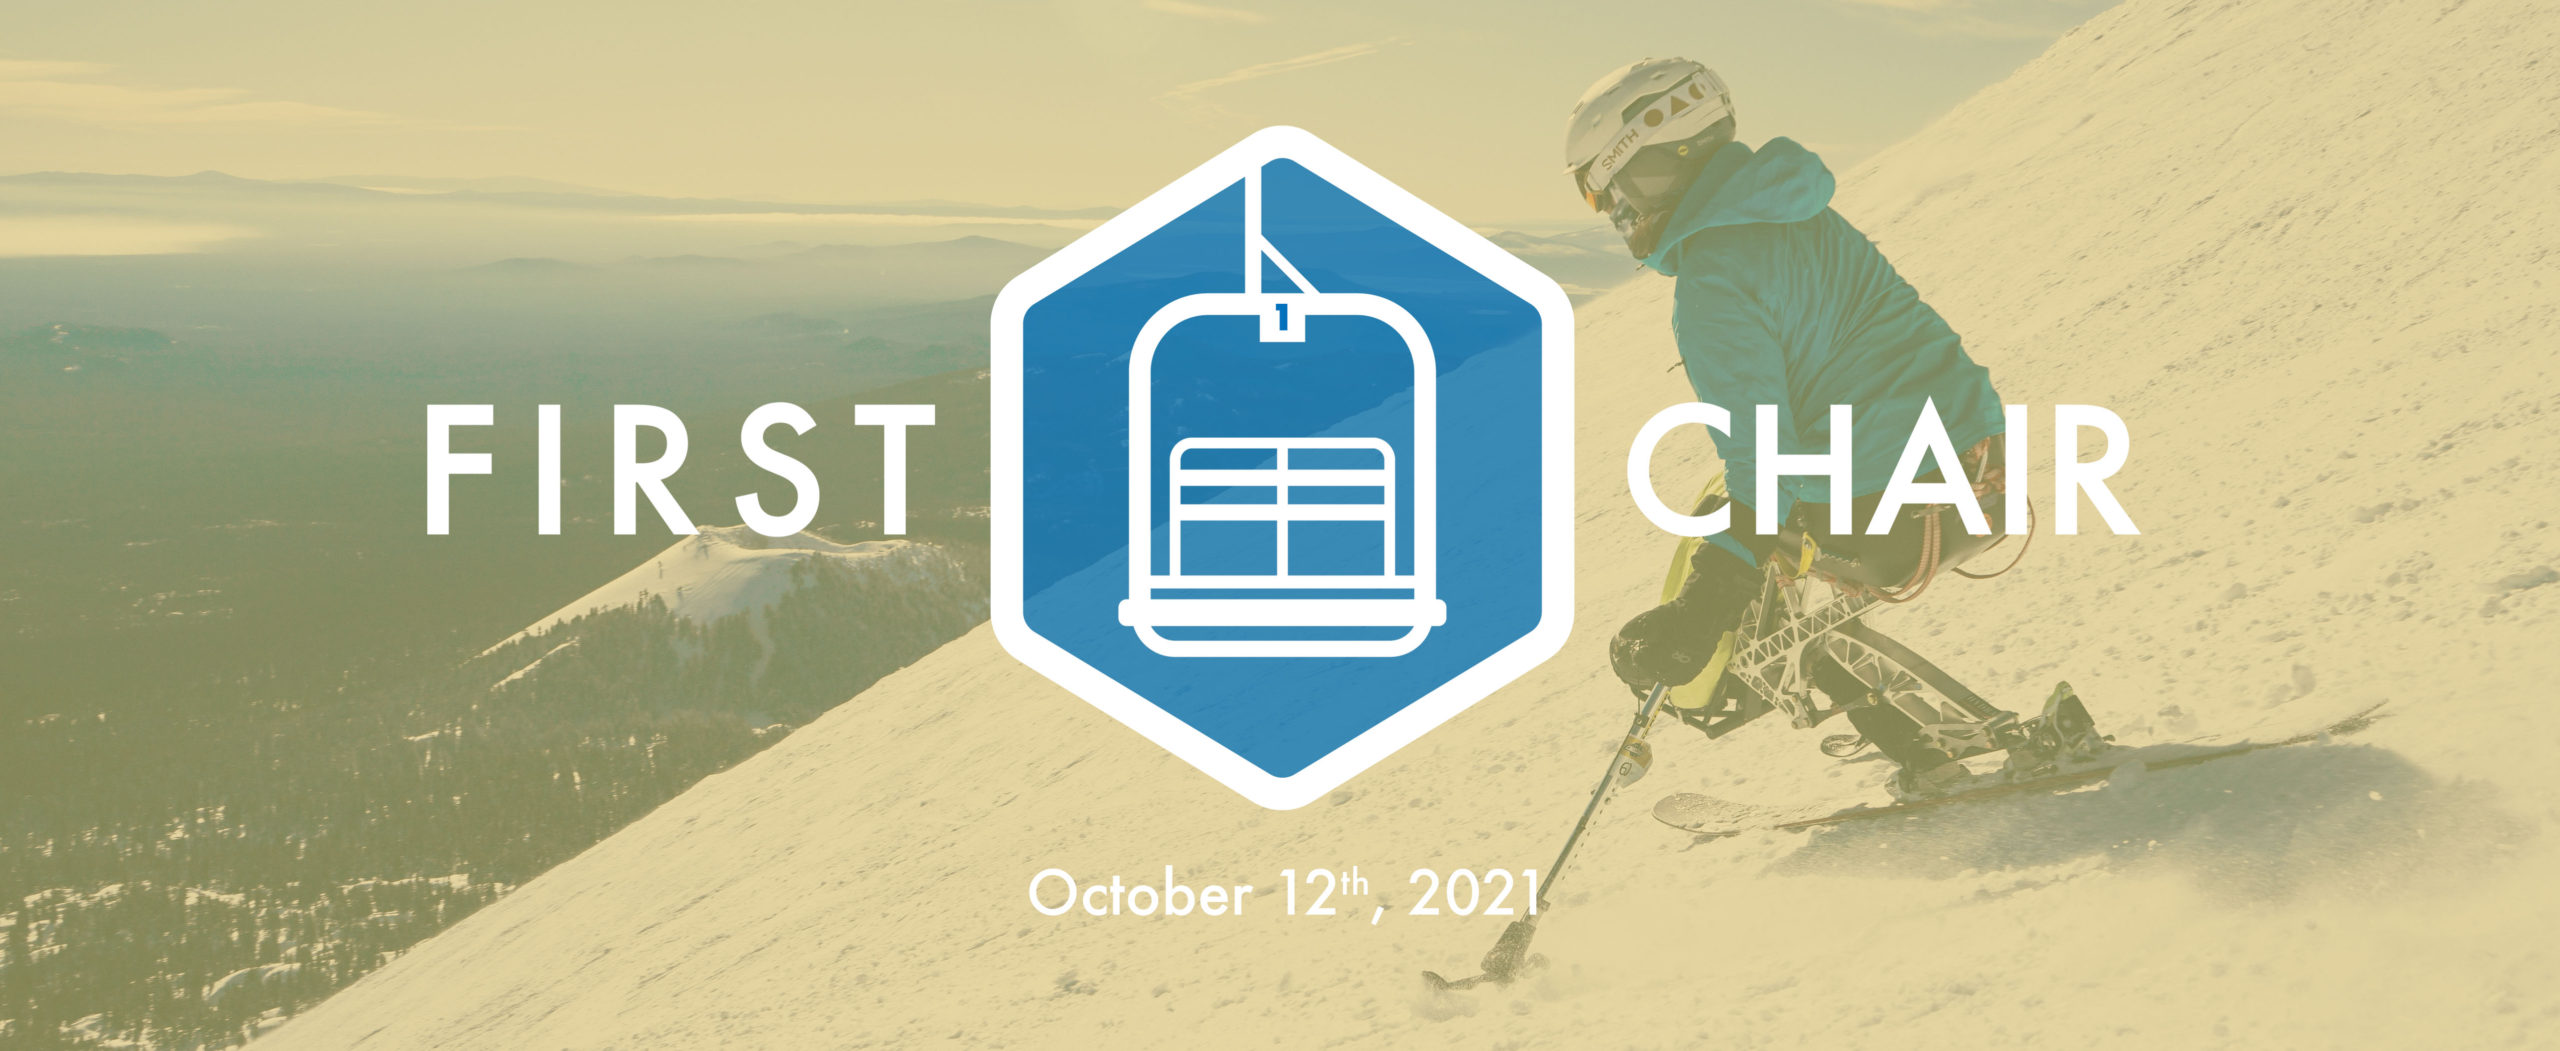 first chair logo with a sit skier in the background